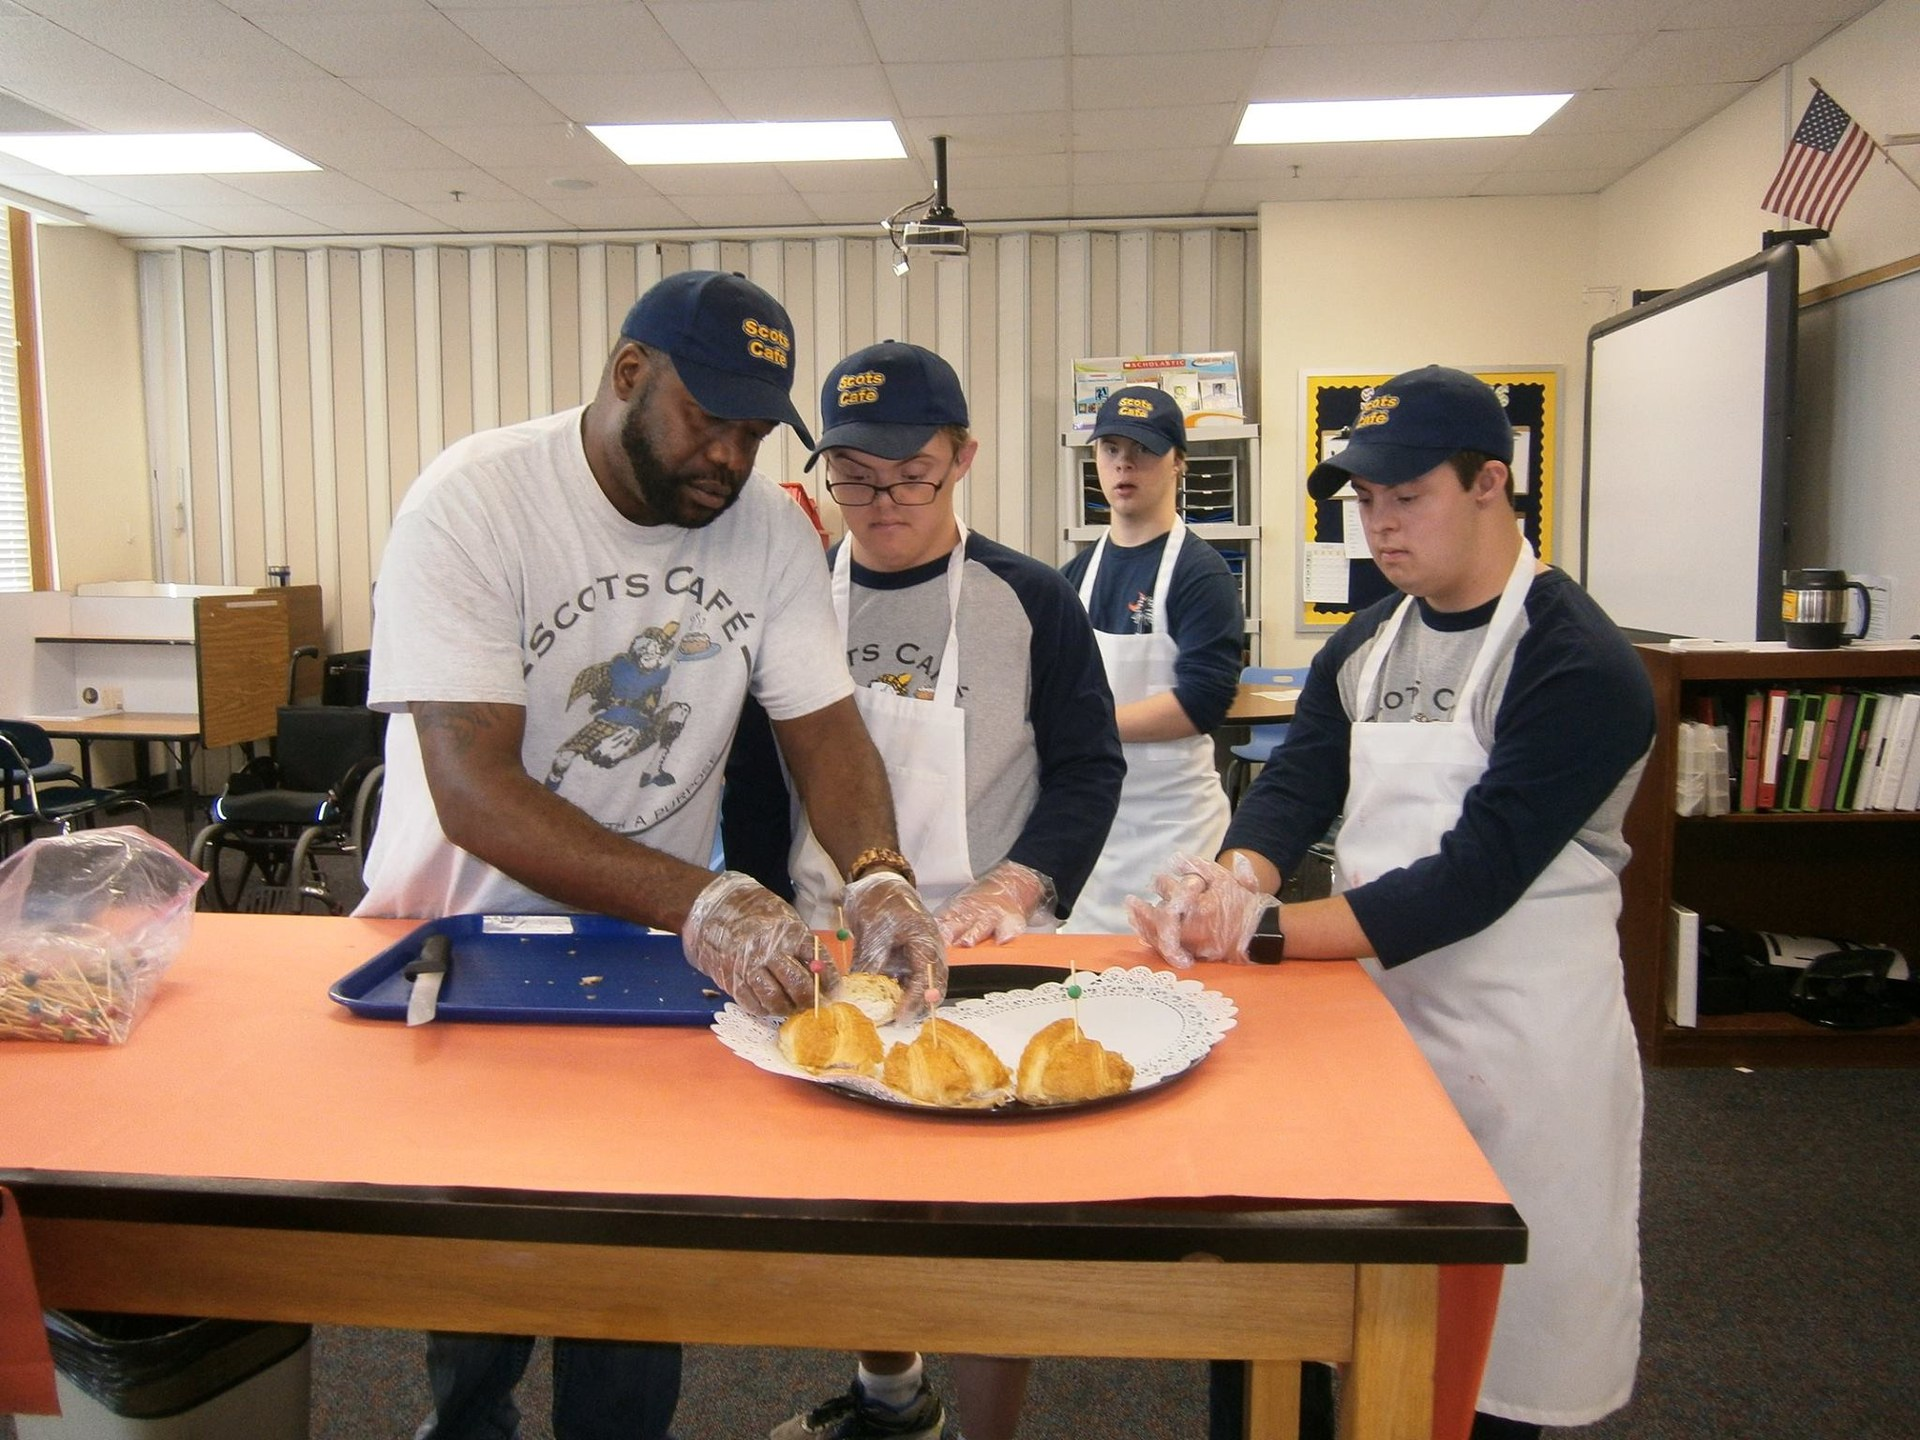 Scot's Cafe employees prepare loaves of fresh bread for an event.